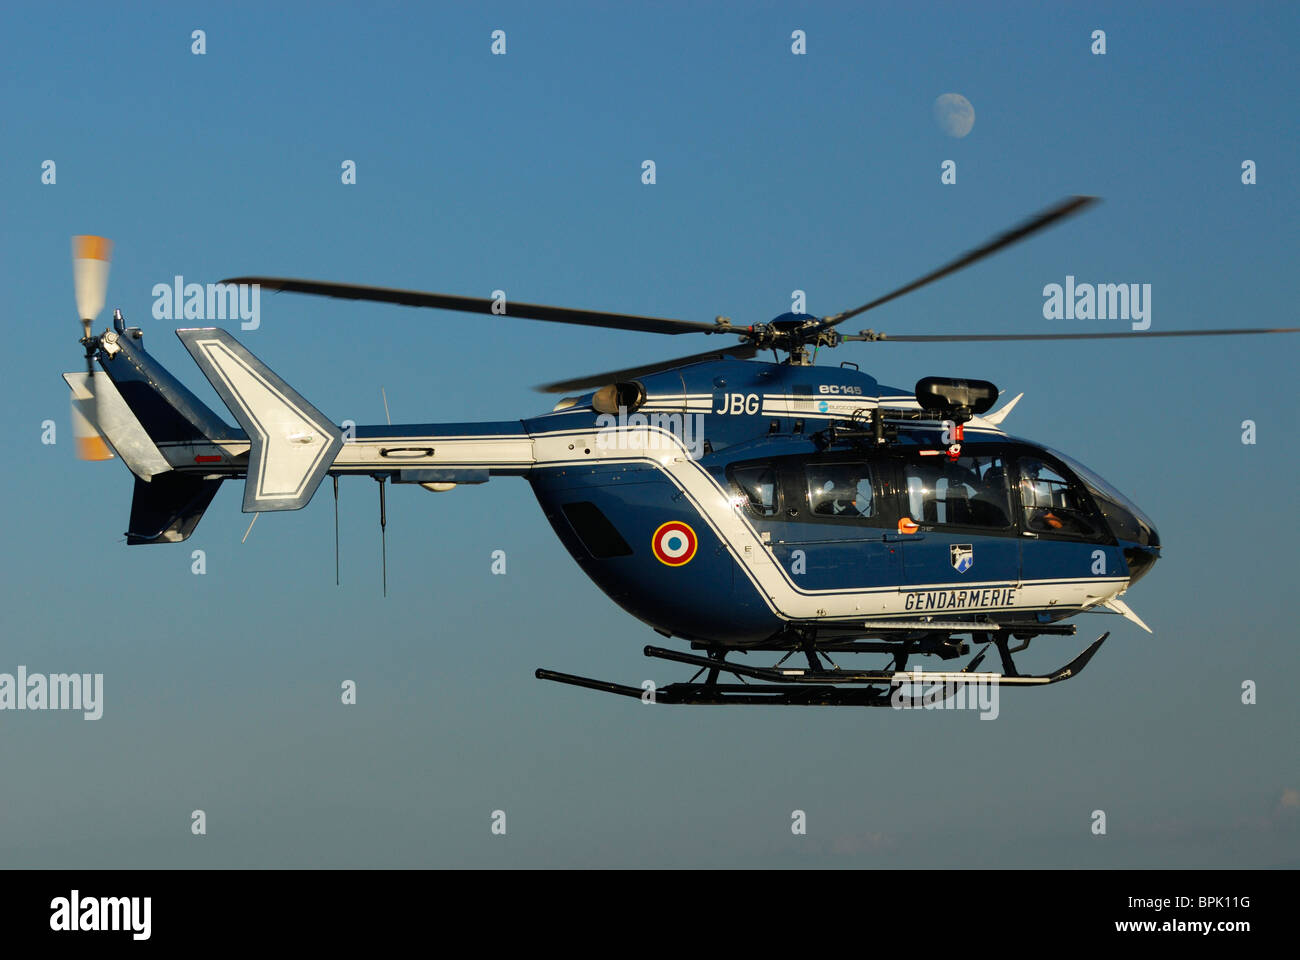 Helicopter Eurocopter EC-145 of the french Gendarmerie Police forces - Stock Image